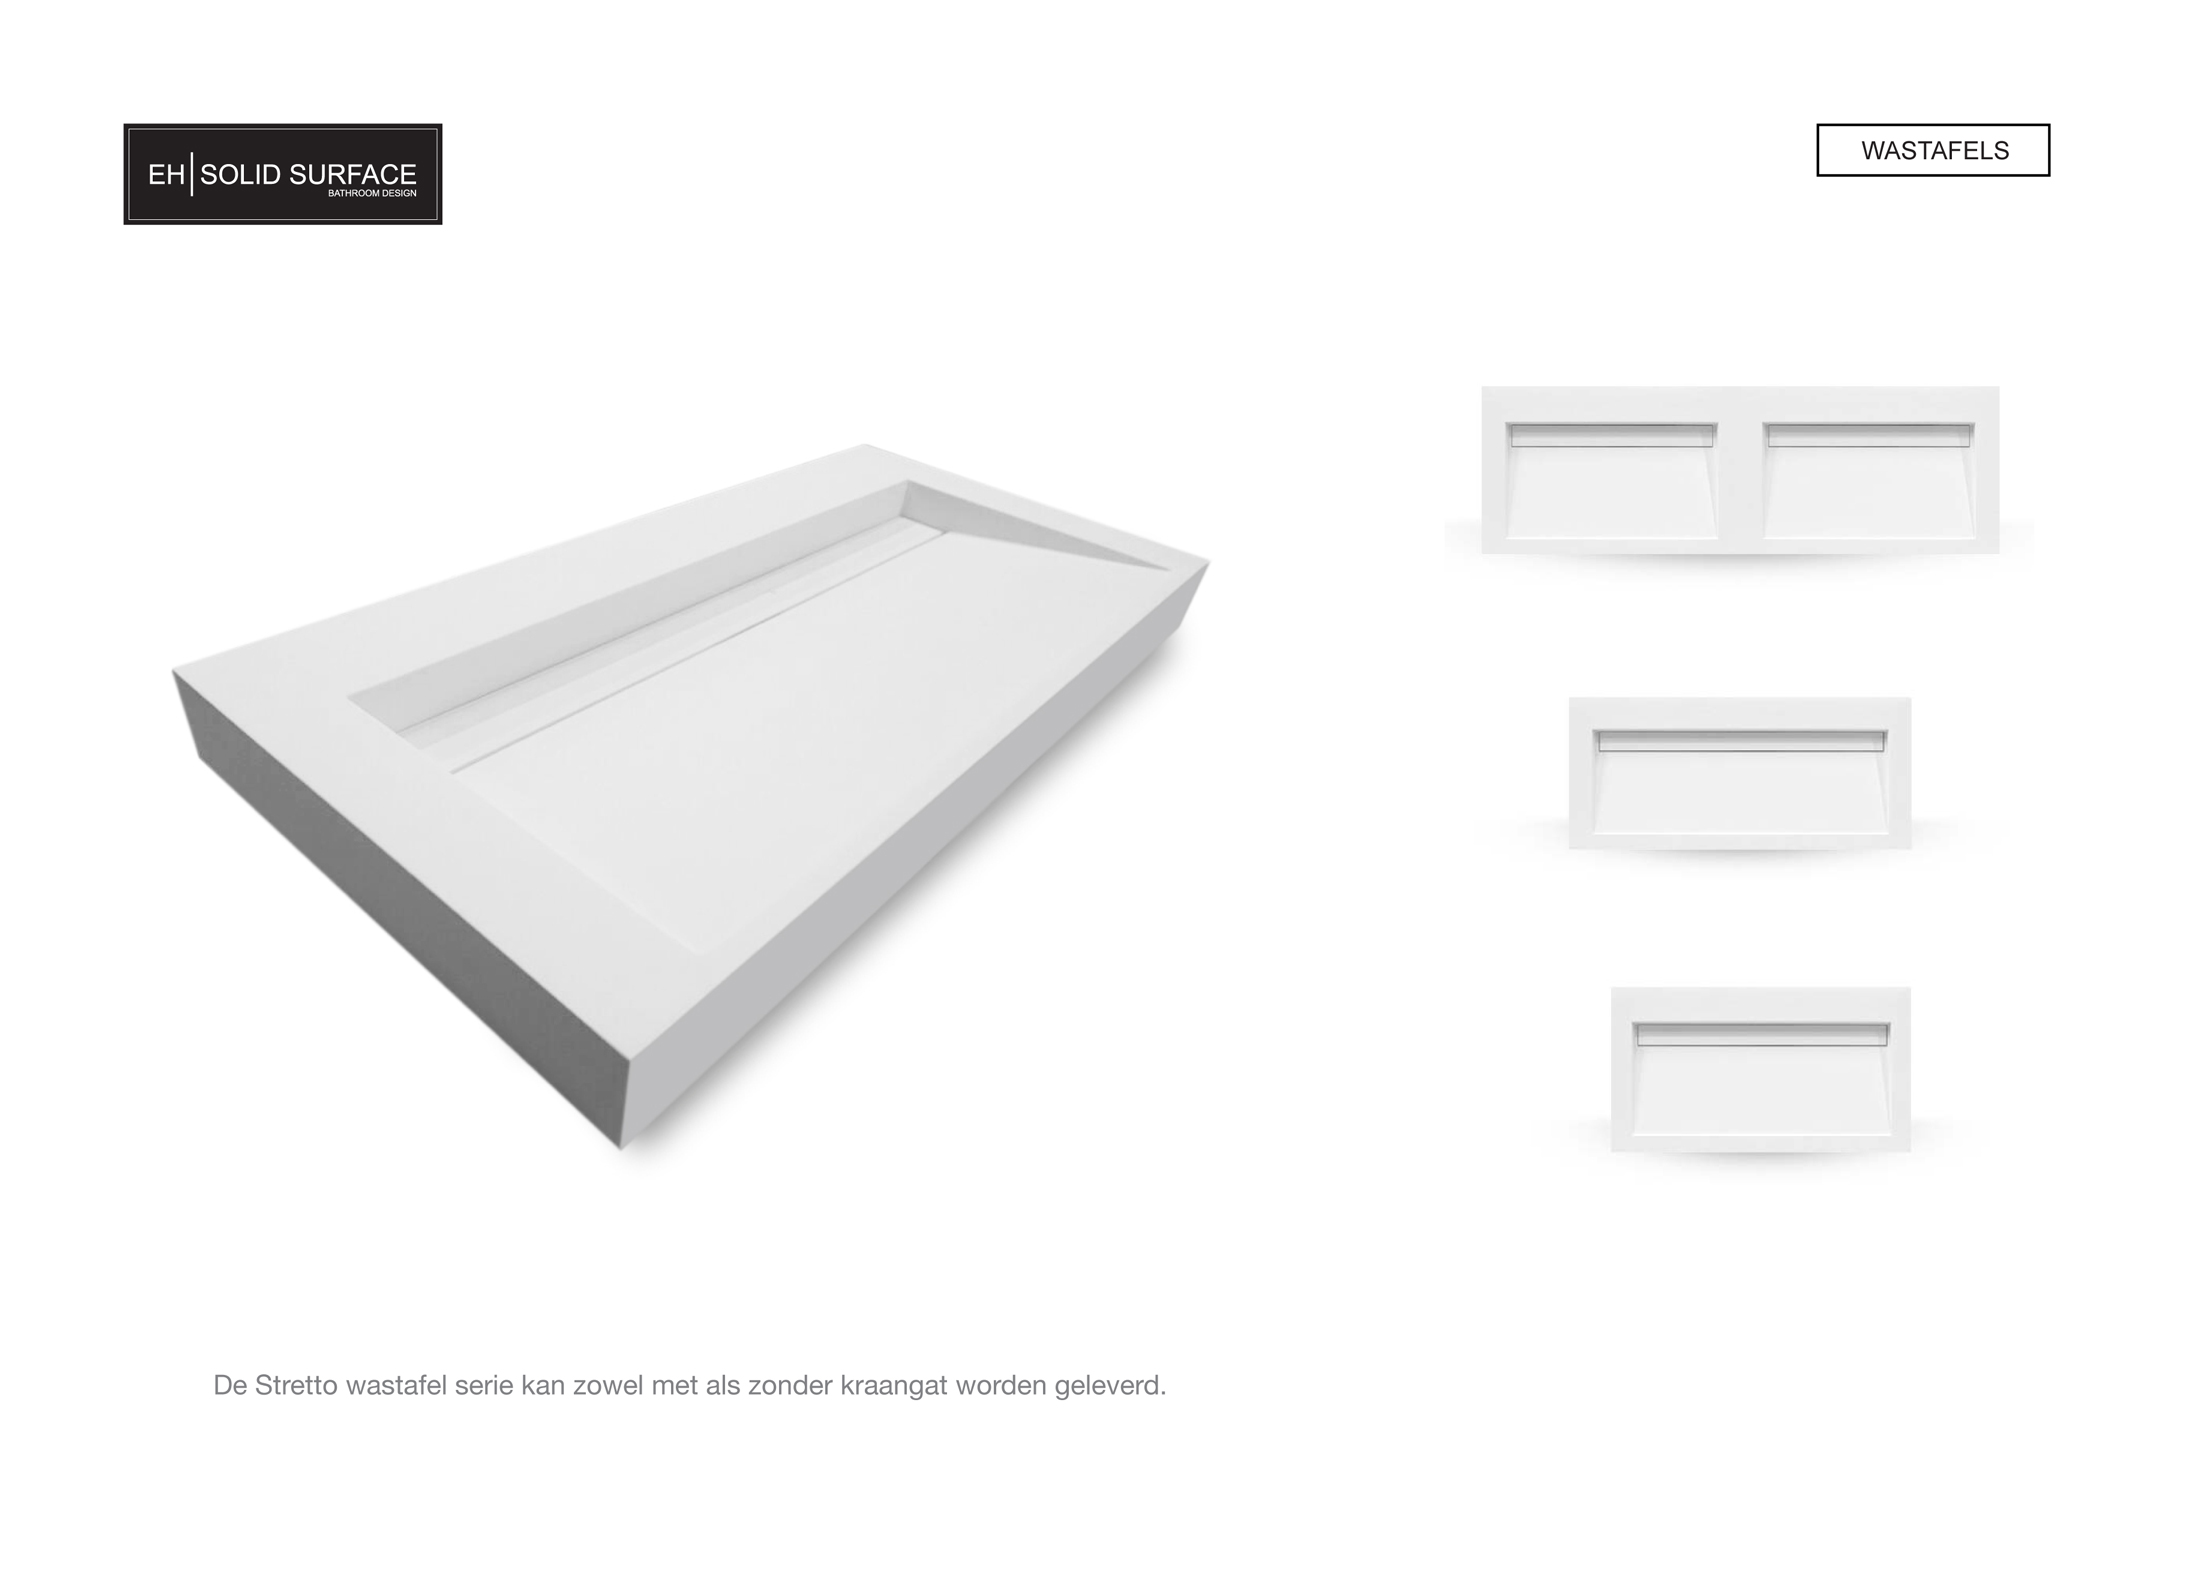 EH SOLID SURFACE